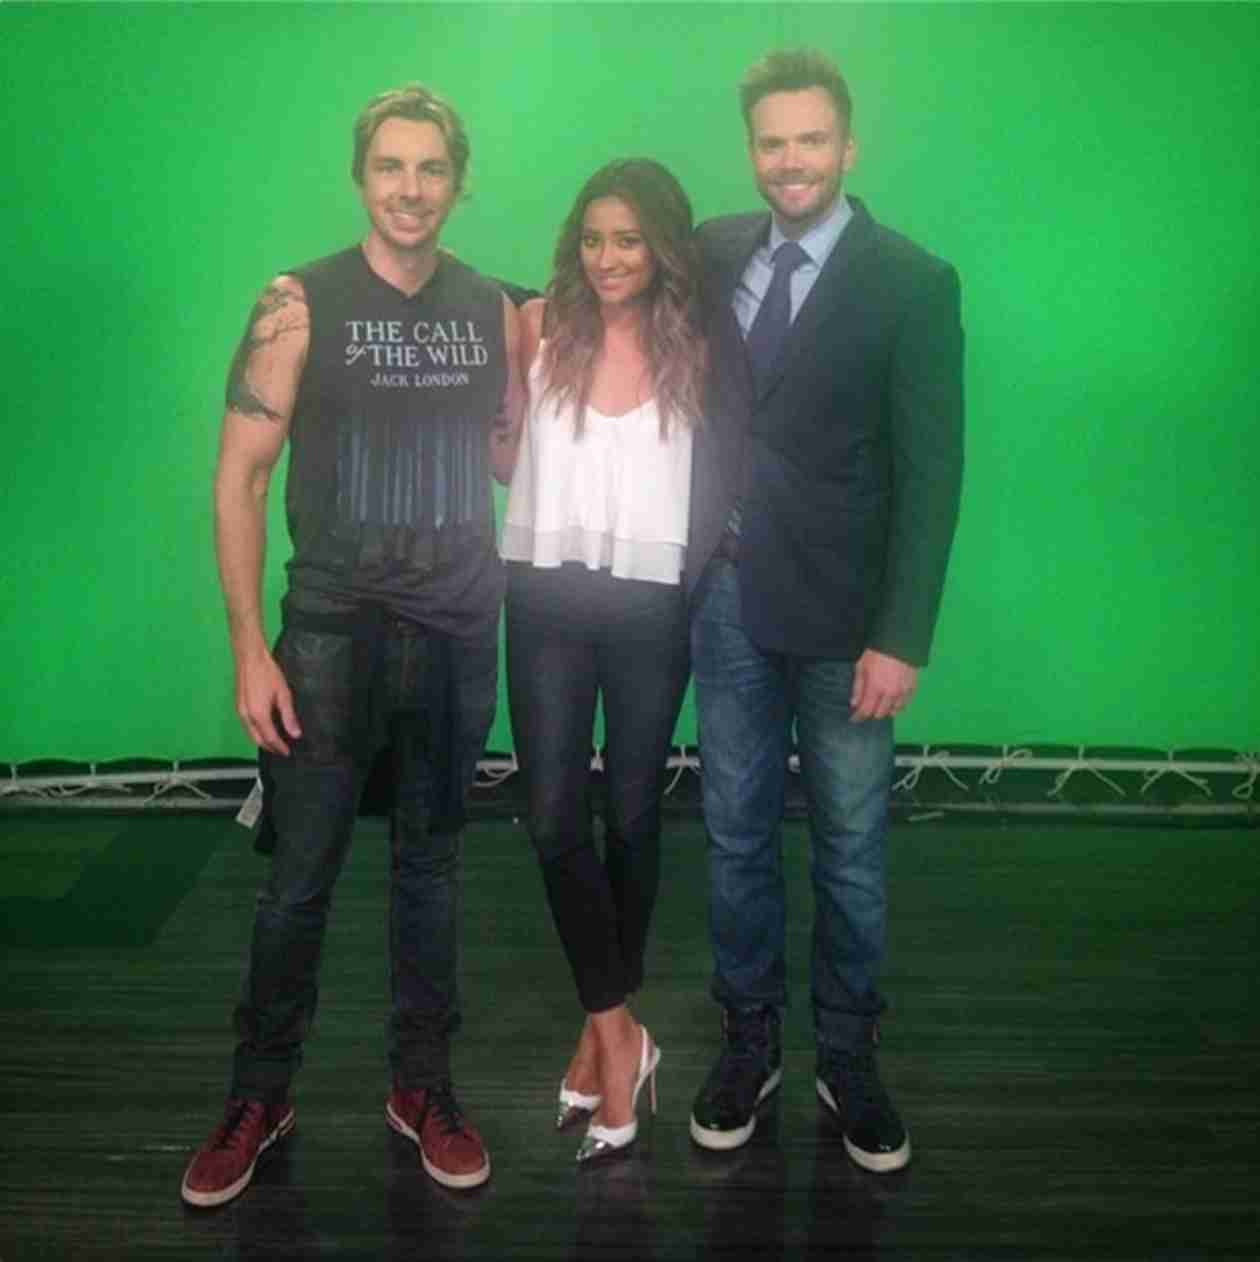 Shay Mitchell Guest Stars on The Soup With Joel McHale (PHOTO)